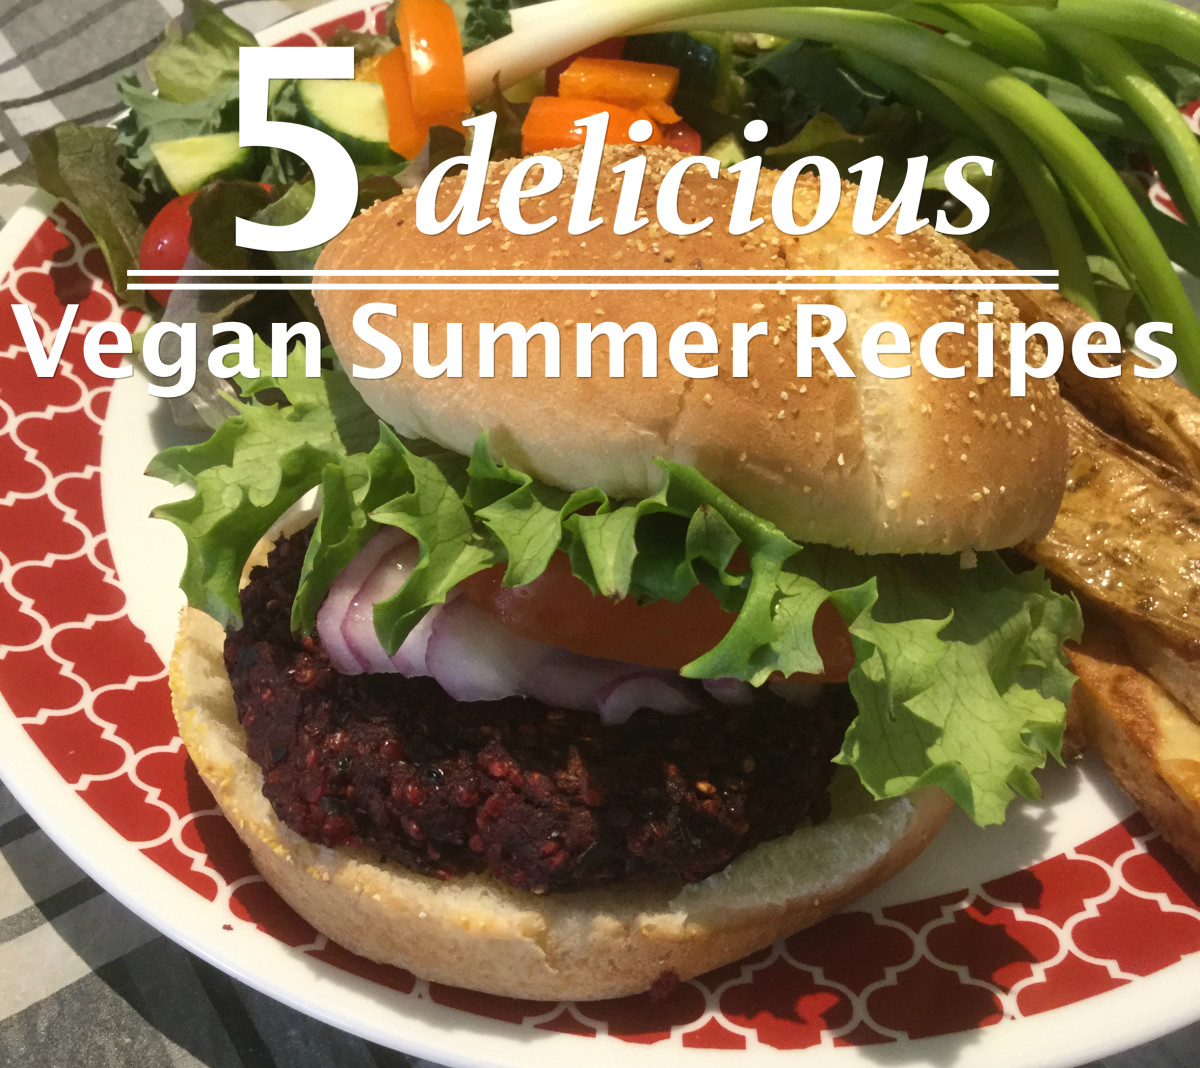 This beet and bean burger is one great idea for your vegan barbecue.